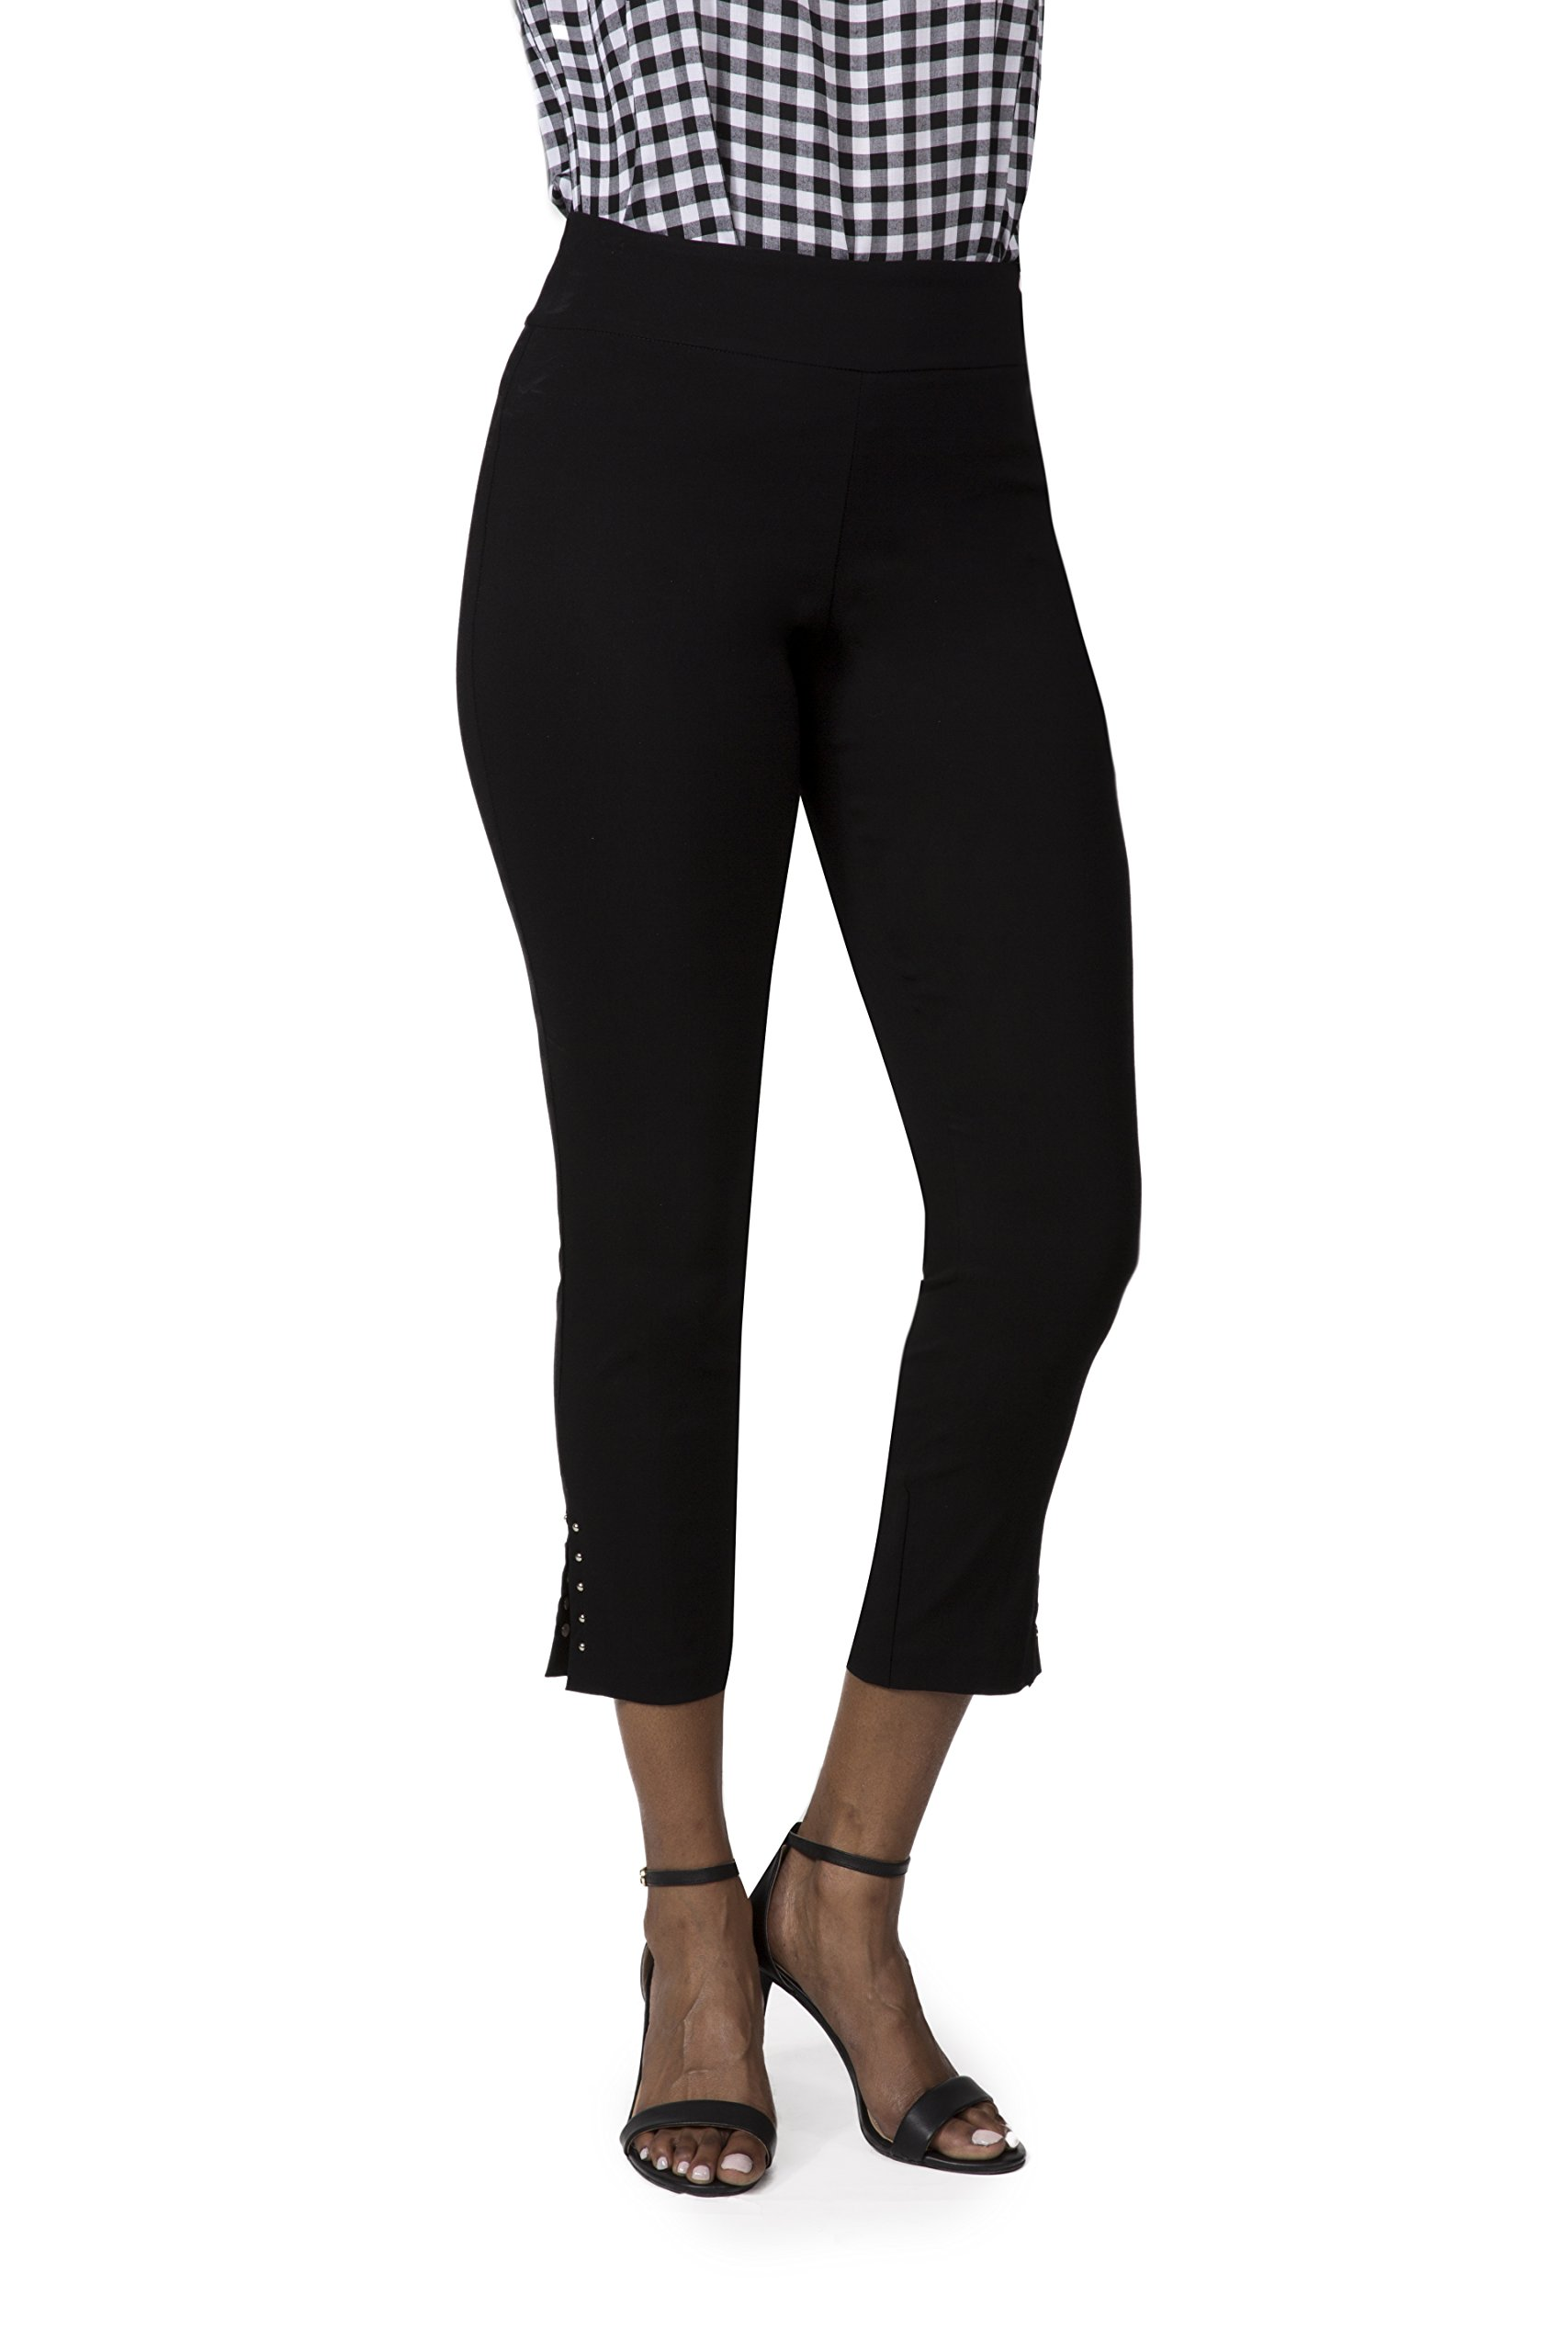 Fundamental Things Women's Pull On Comfort Slim Career Pant with Tummy Control, Black, Size 4